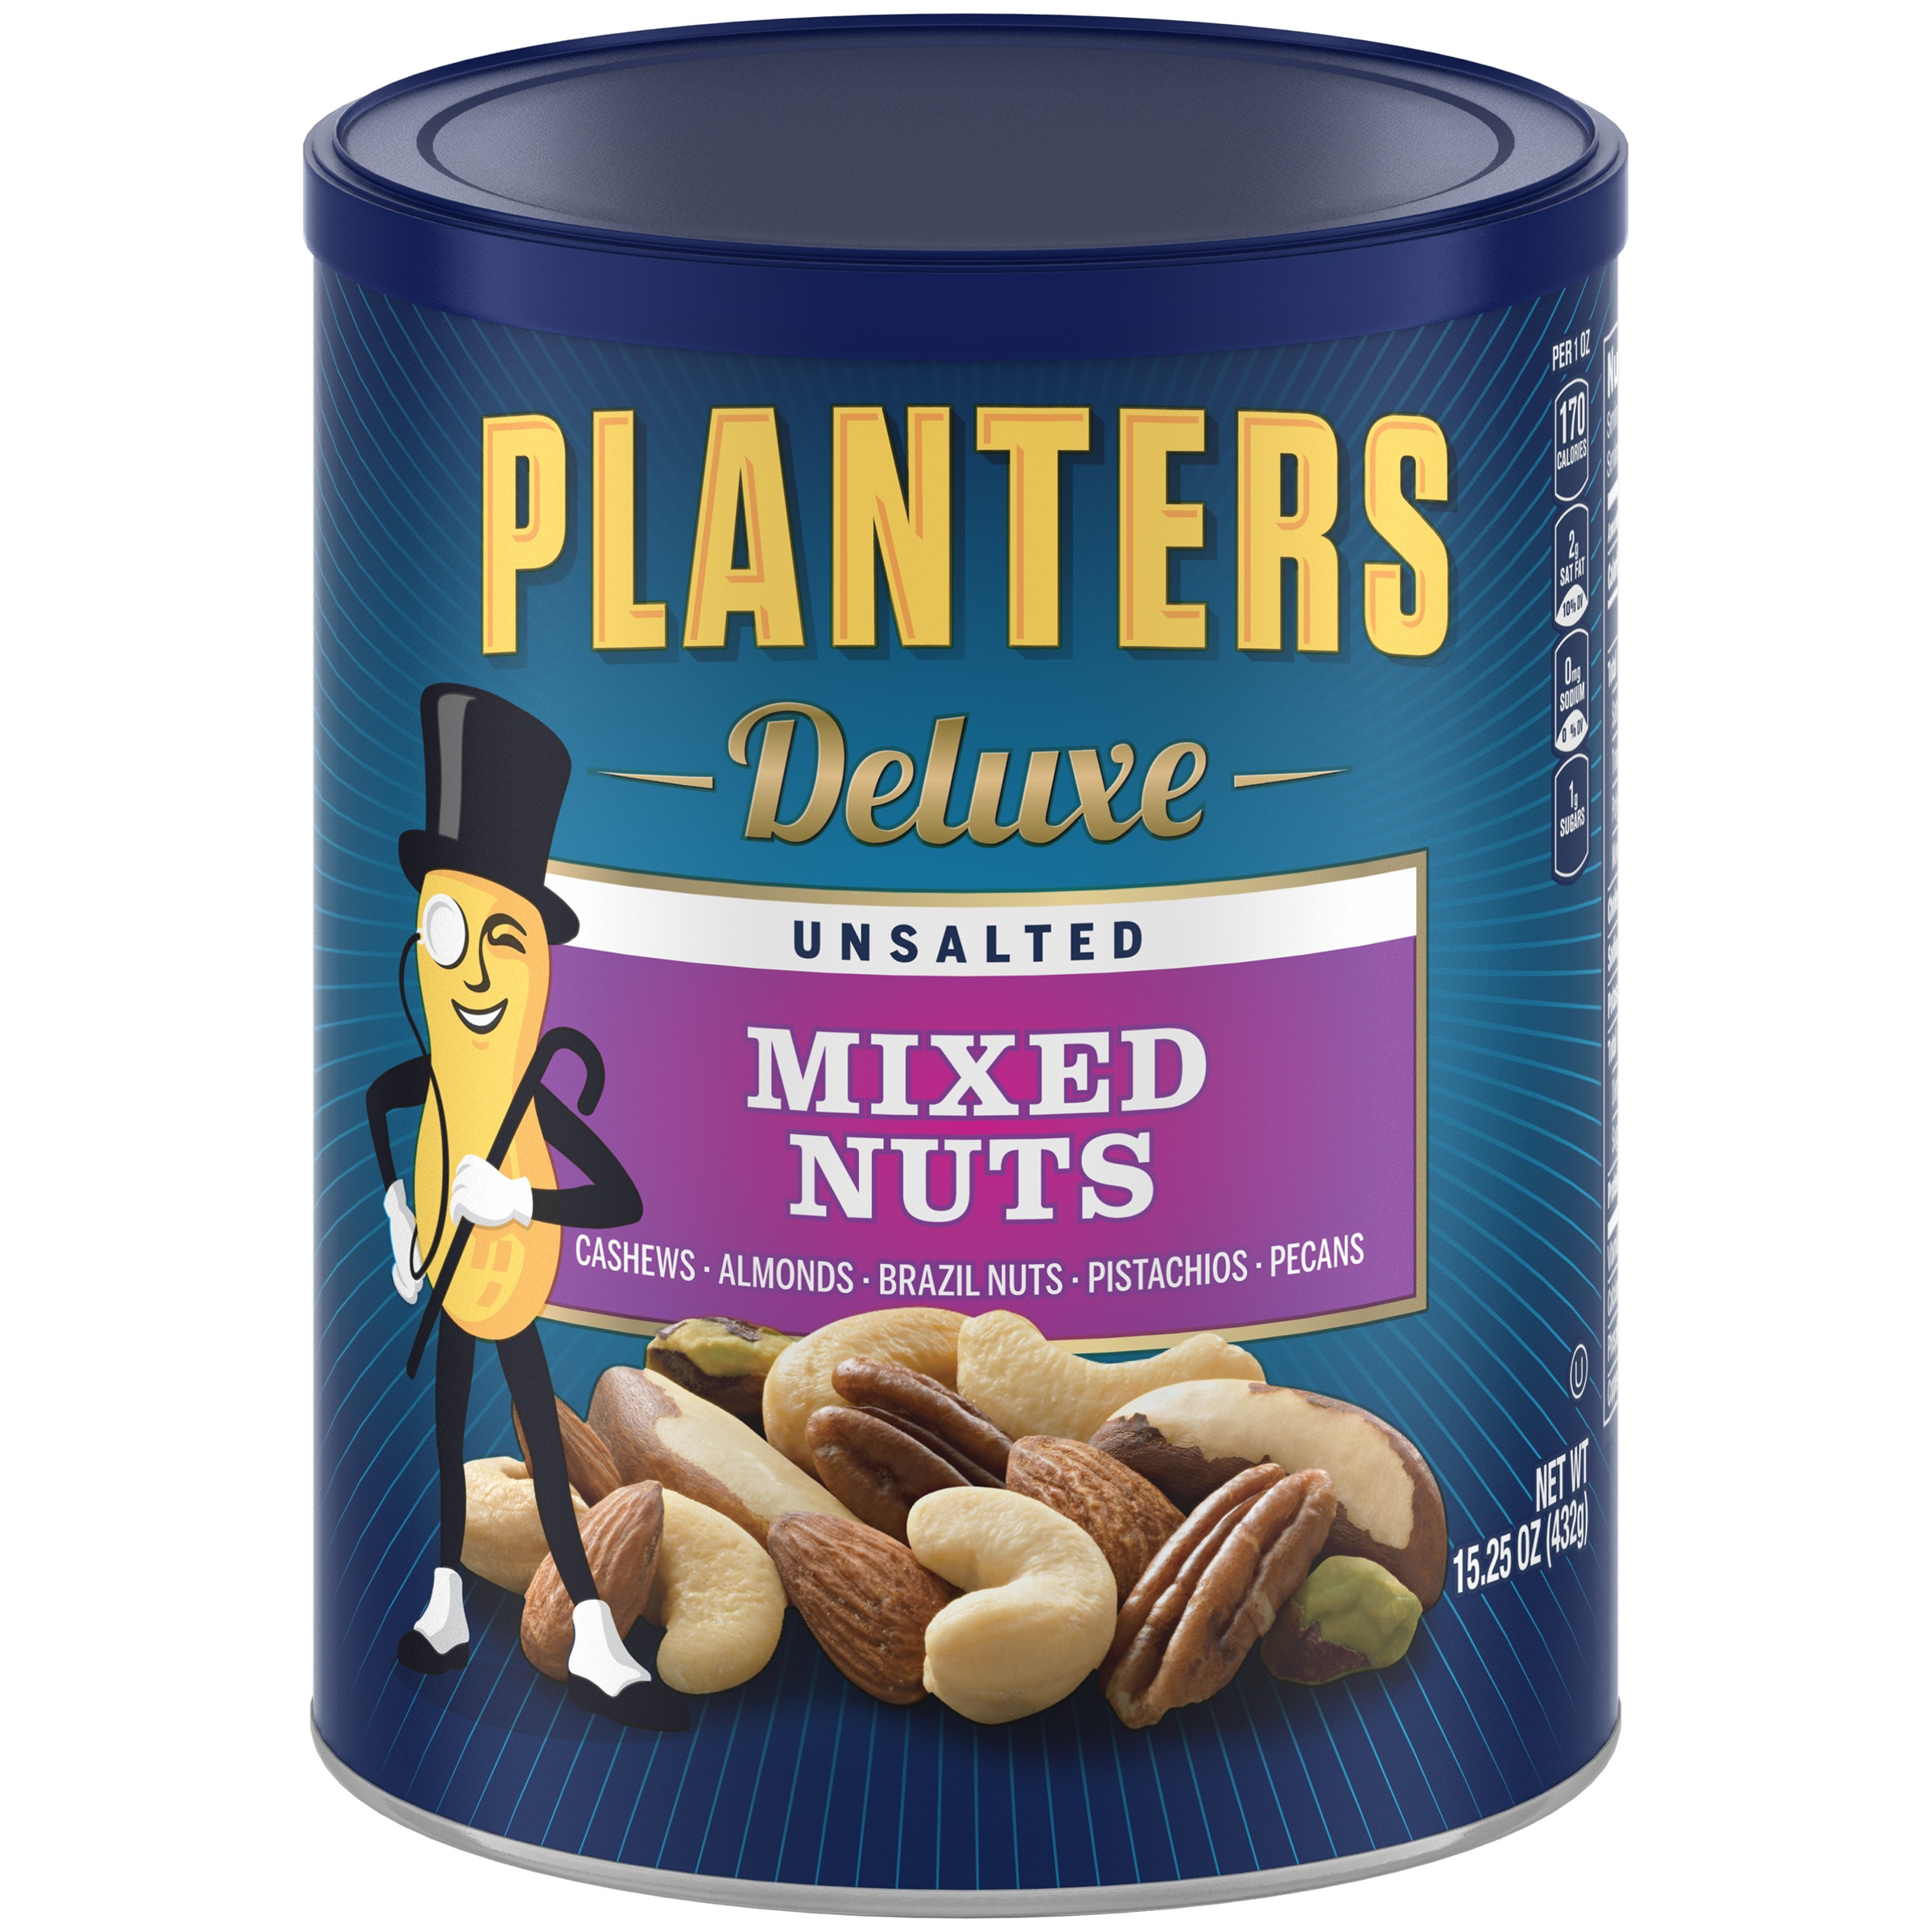 PLANTERS SNACK NUTS DELUXE MIXED NUTS UNSALTED Walmartcom